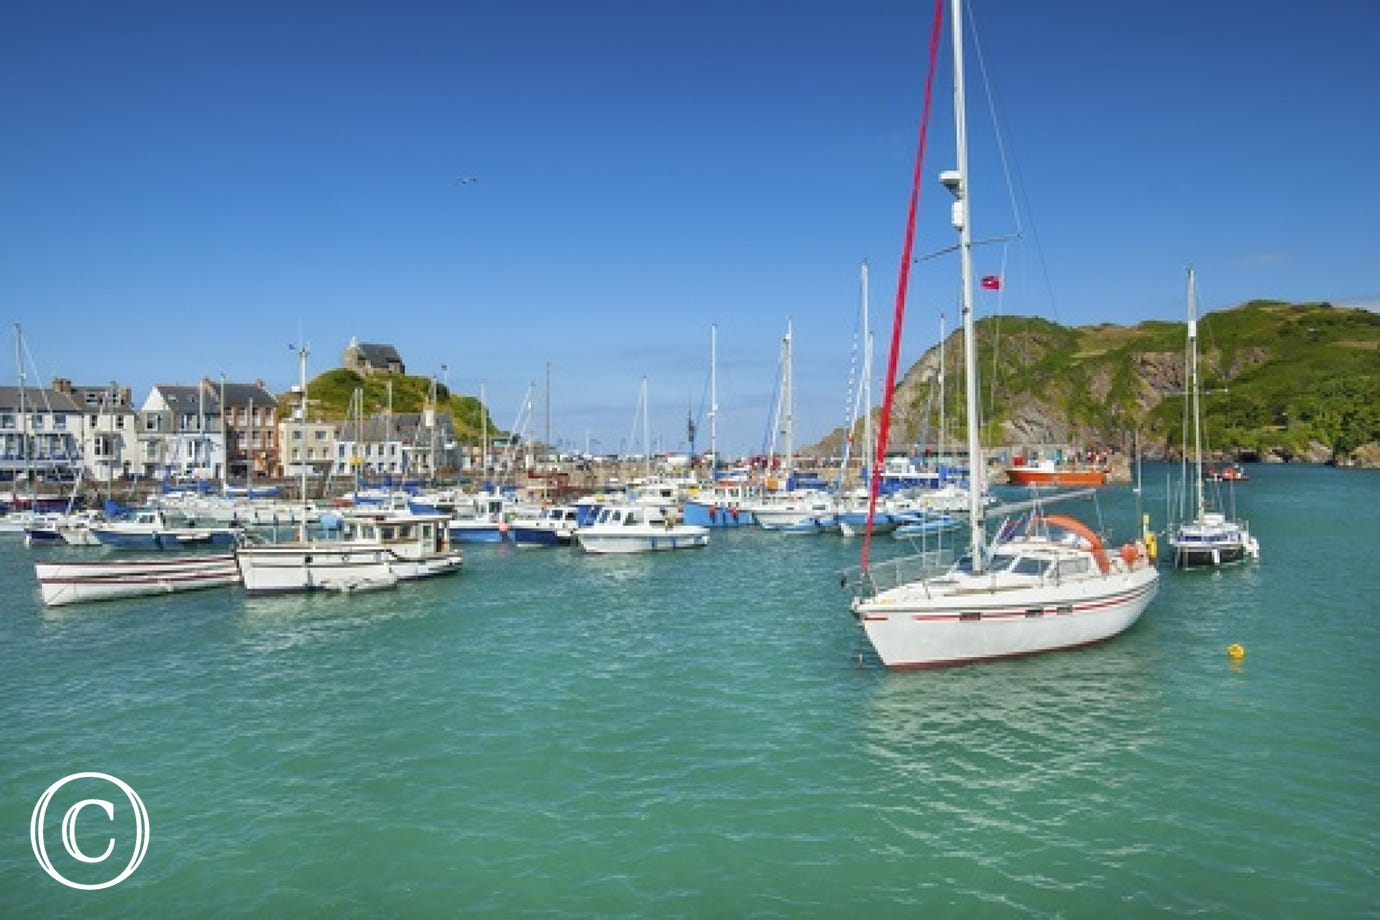 Nearby Ilfracombe Harbour